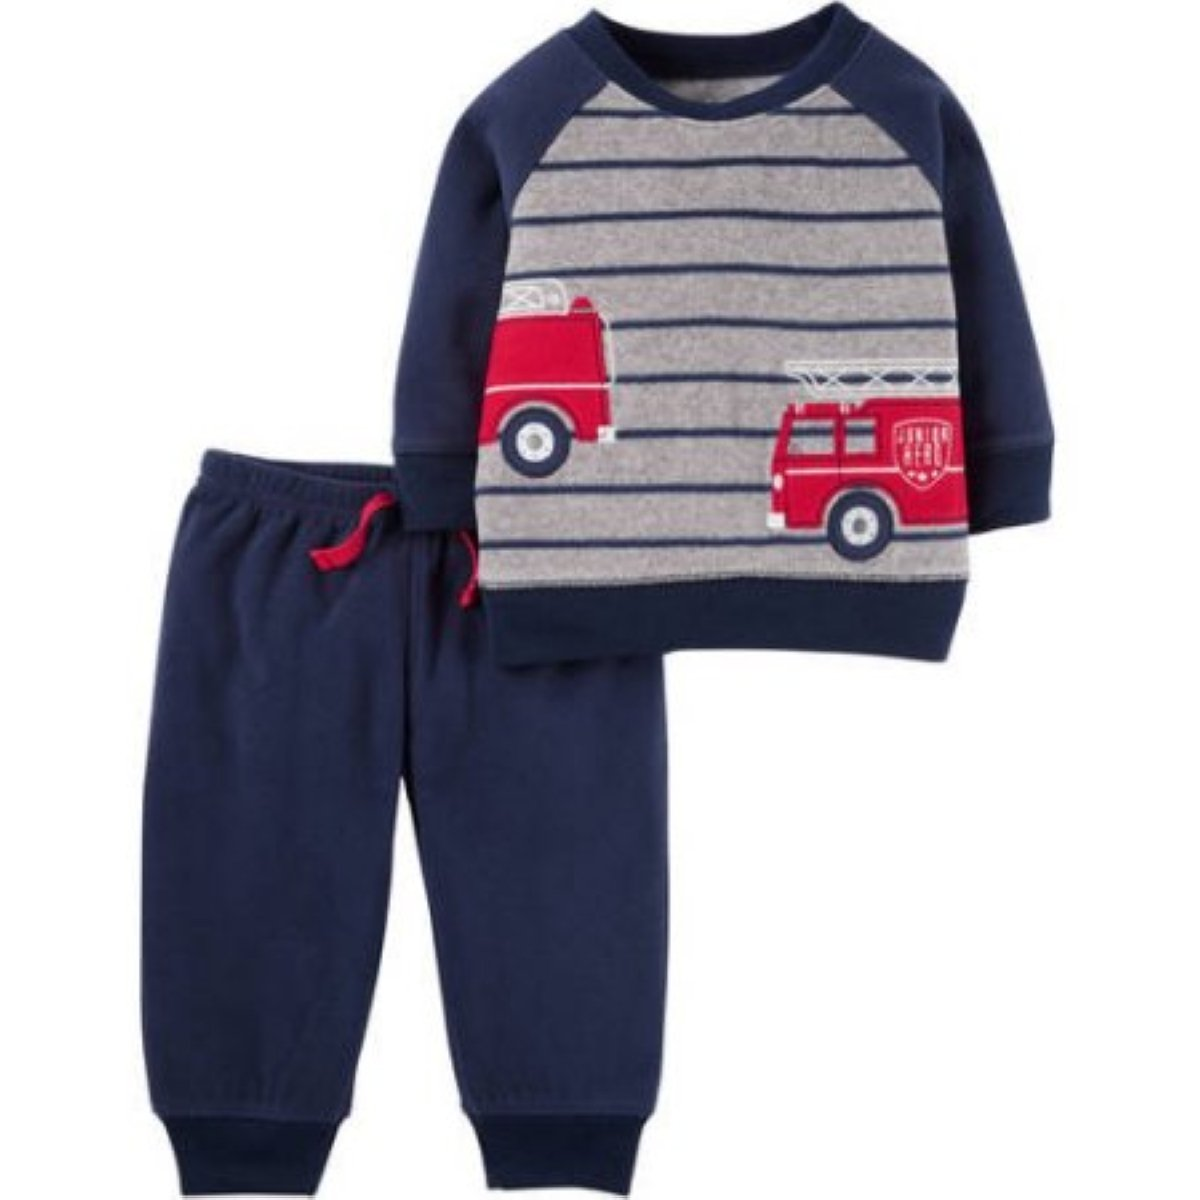 Amazon.com: Child of Mine by Carters Boys Sweater and Pant 2 Piece Set: Clothing